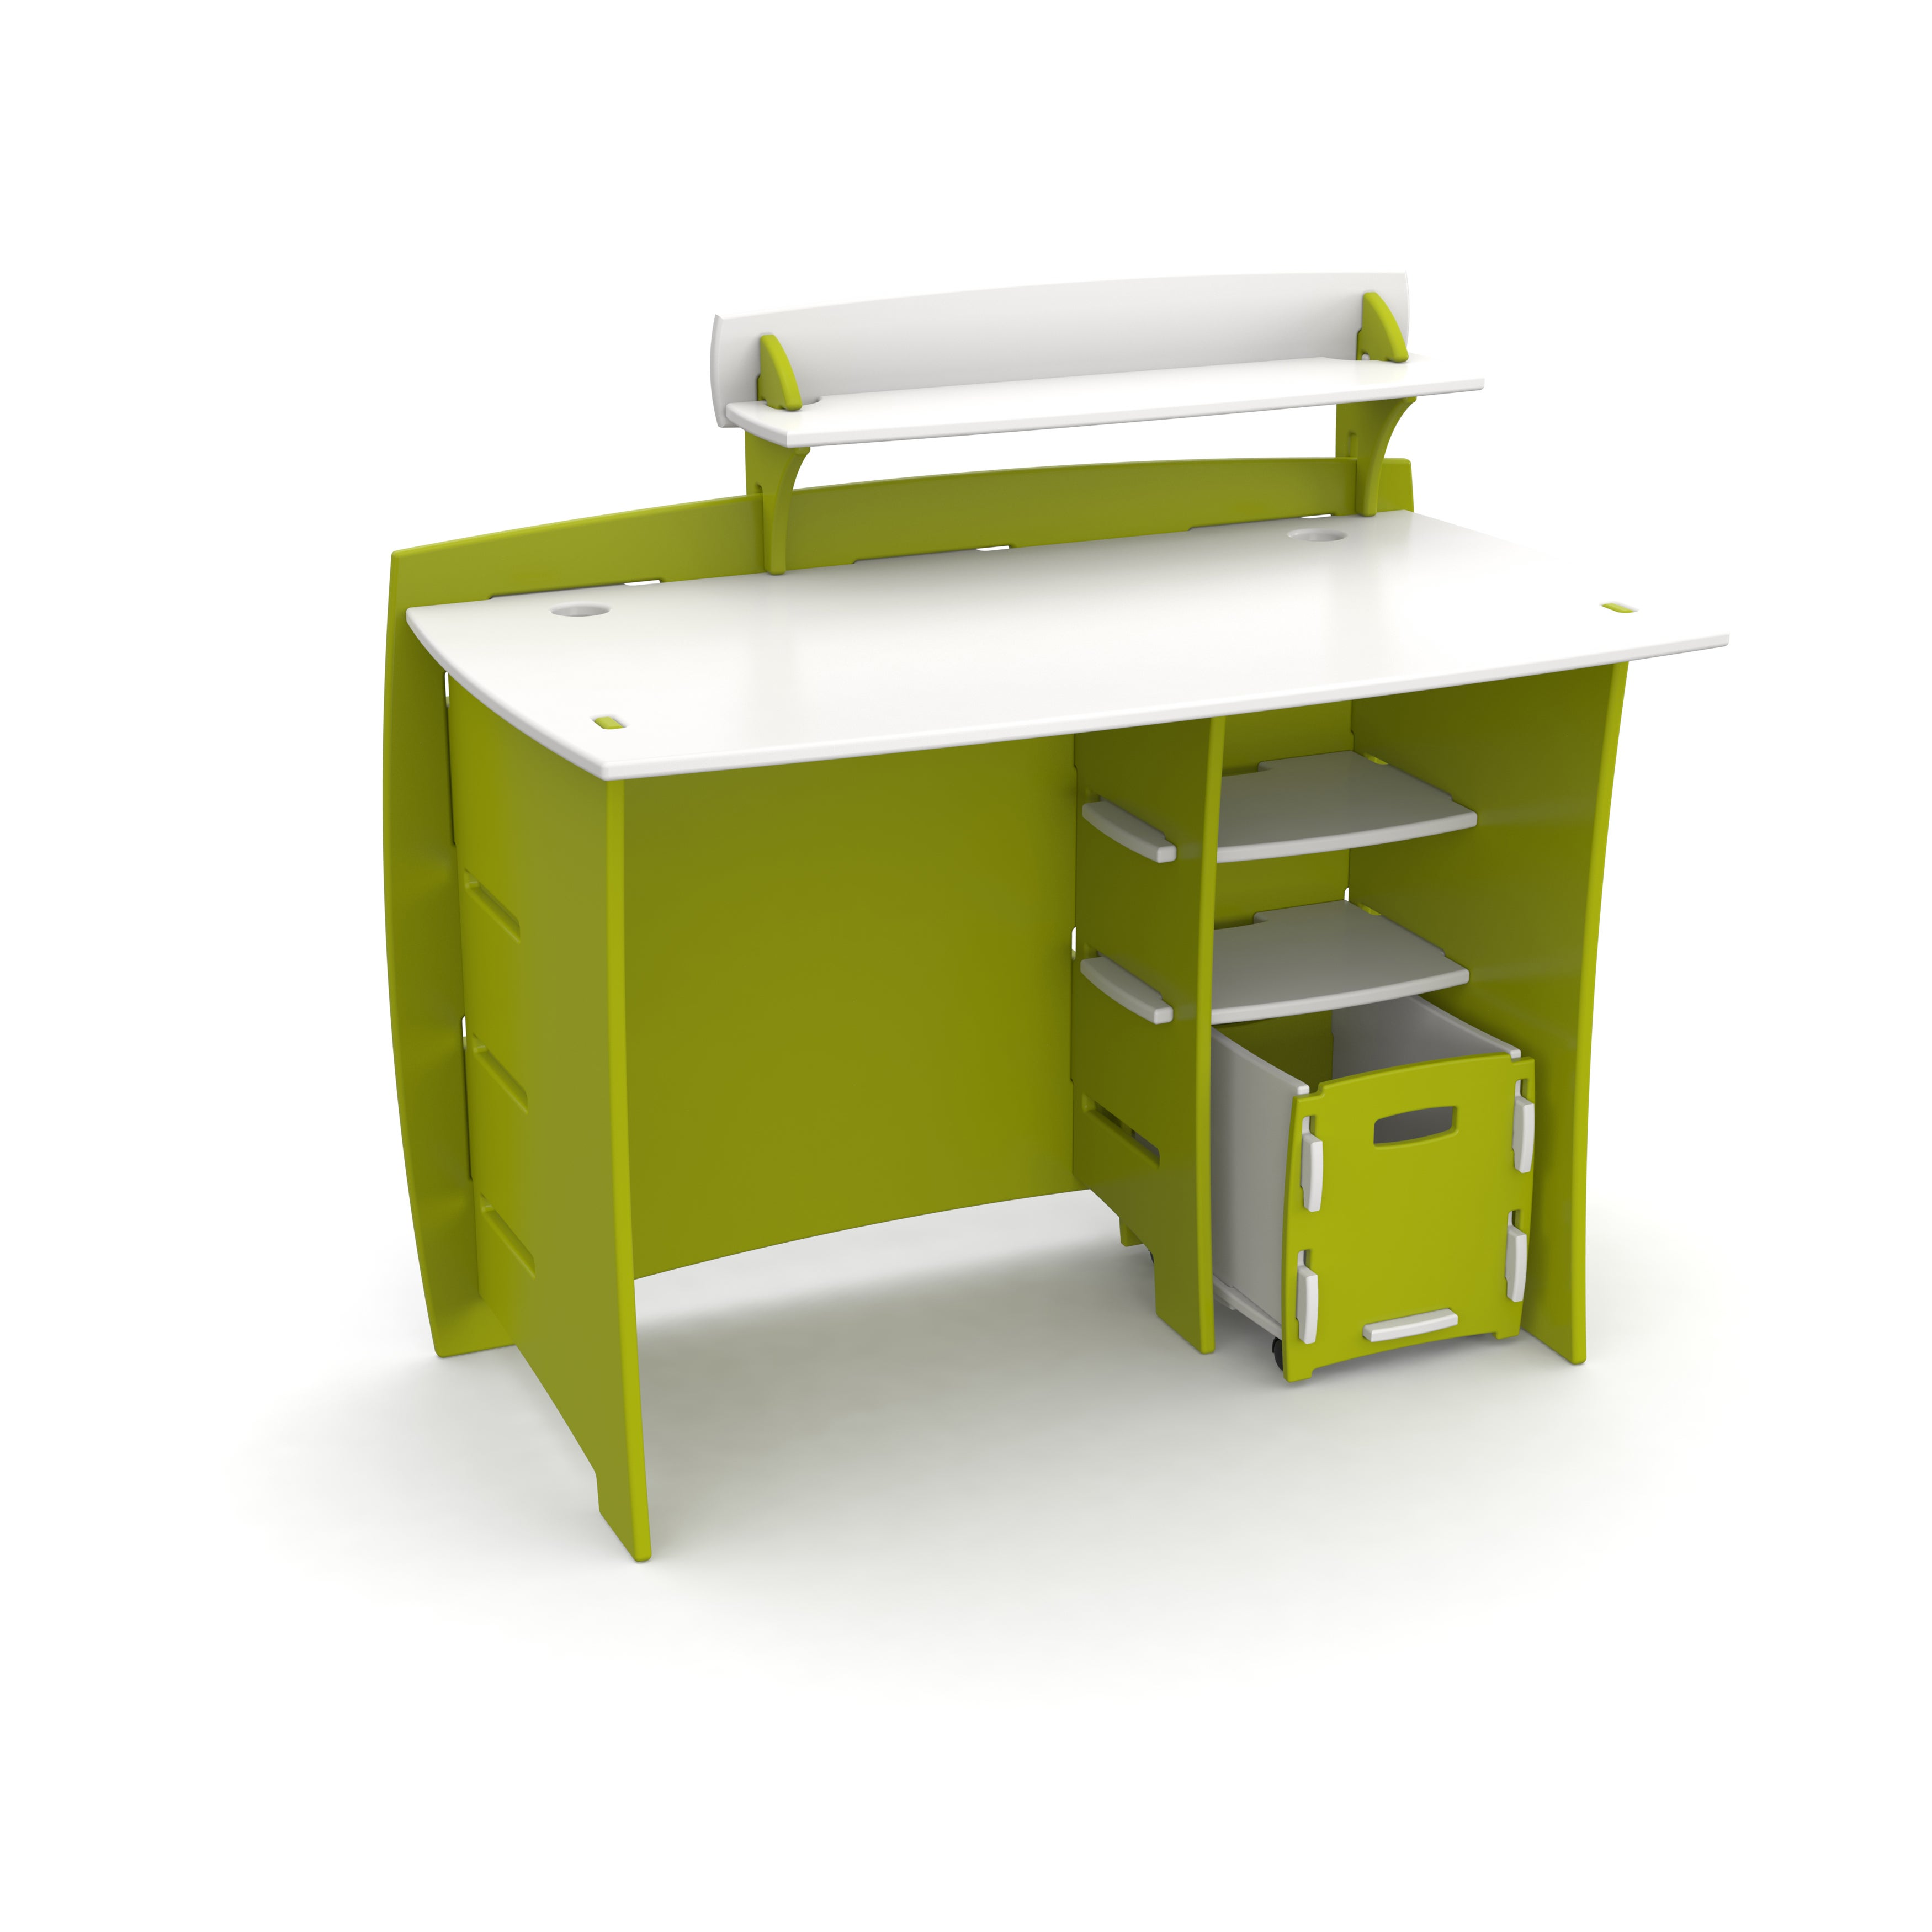 LEGARE Kids Furniture 43-inch Complete Lime Green and Whi...